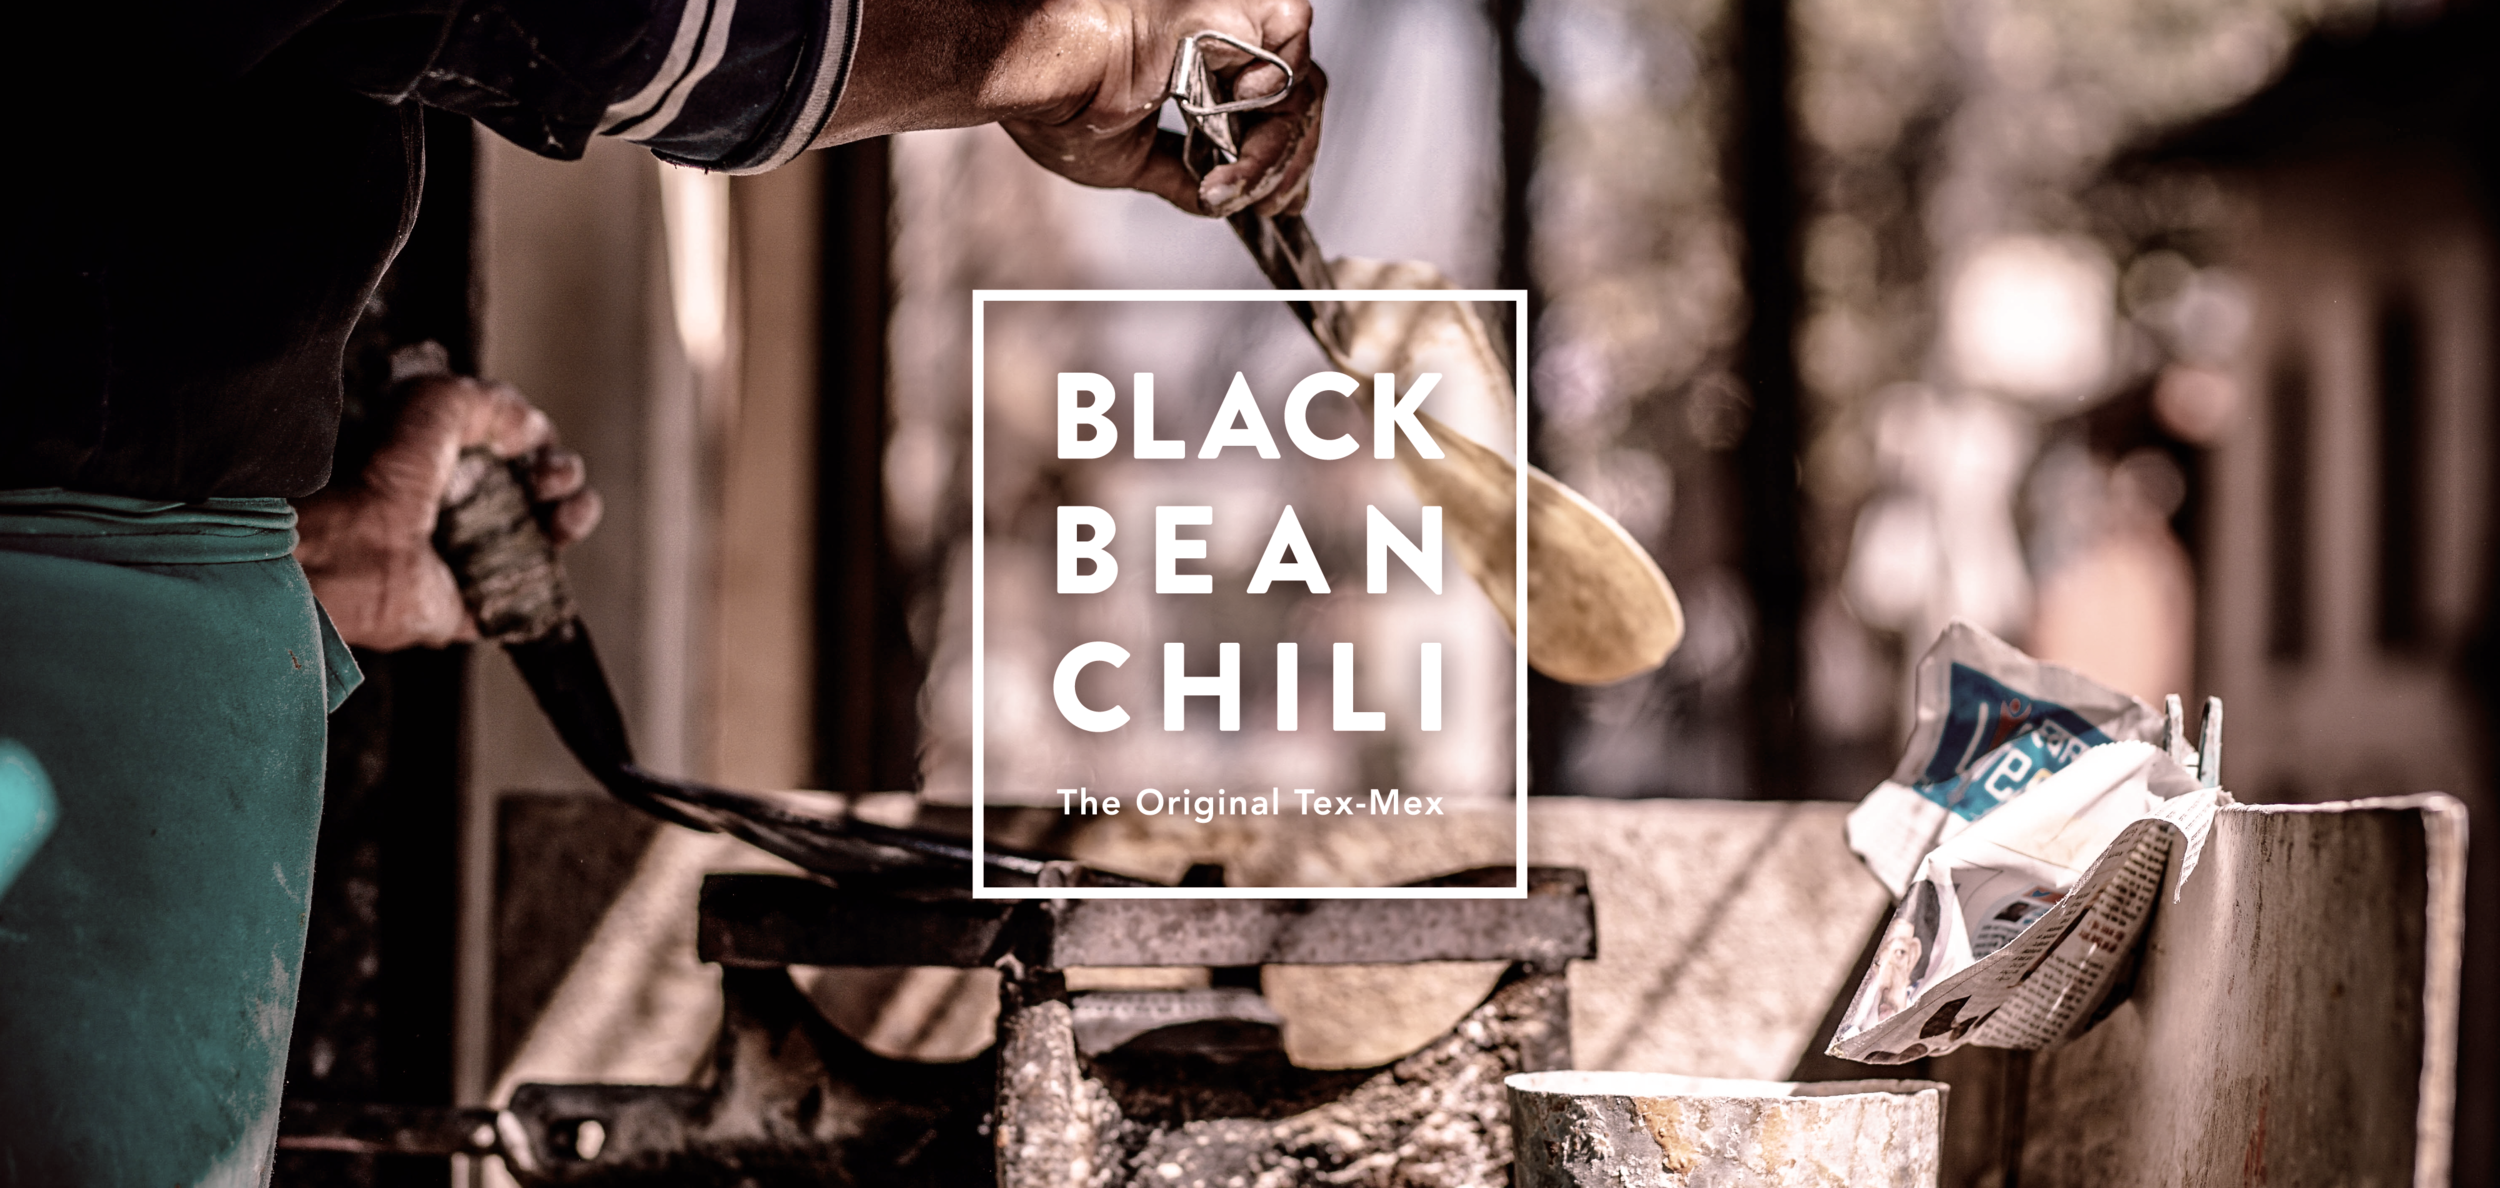 black_bean_chili_image_epices.png